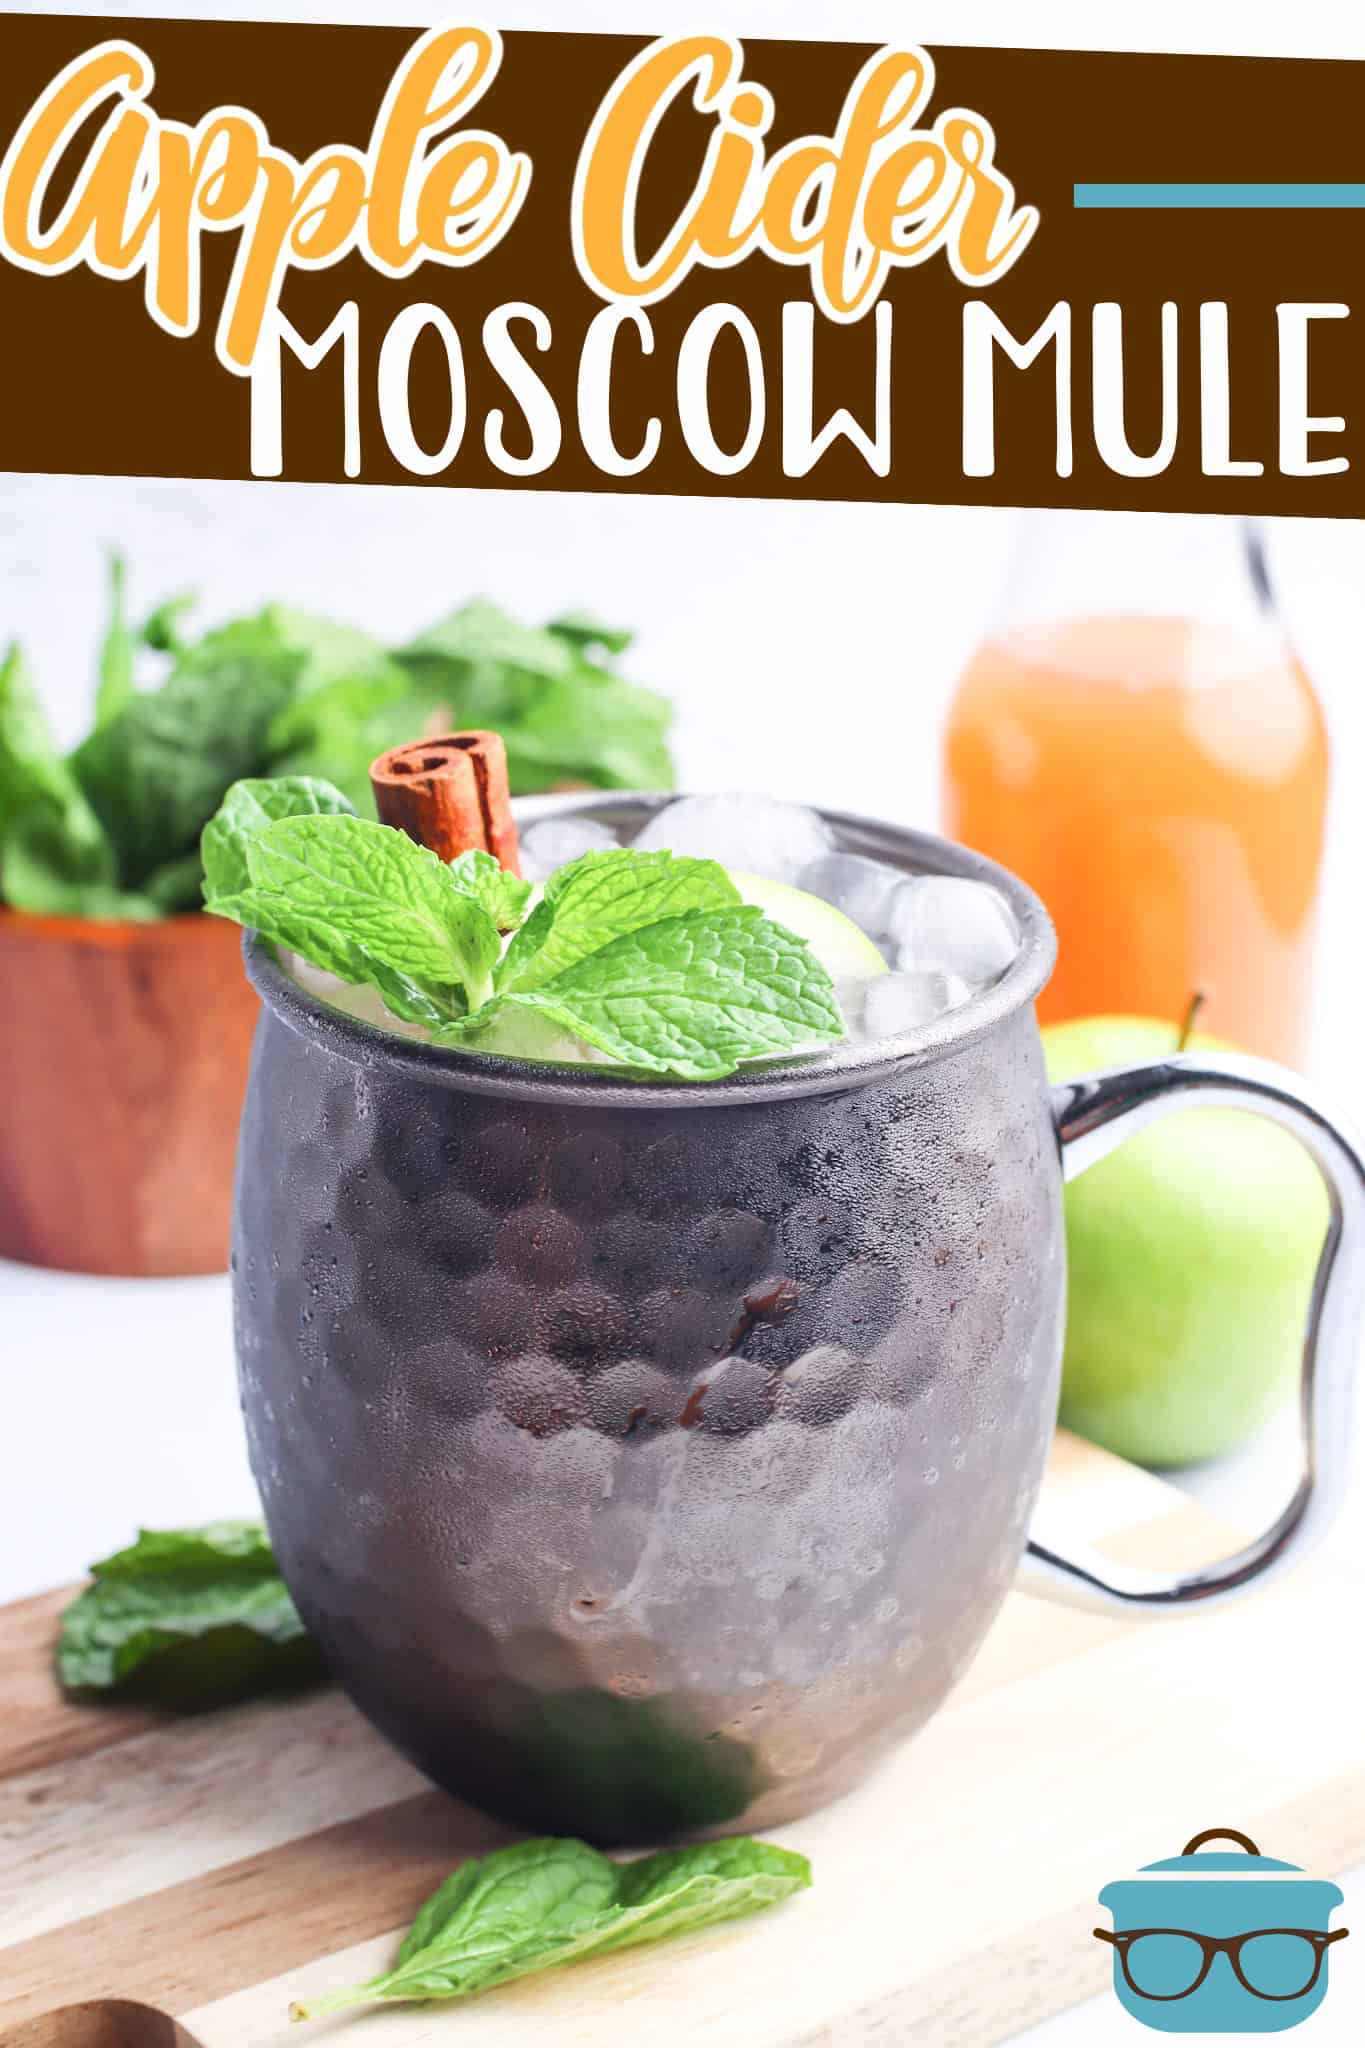 This Apple Cider Moscow Mule recipe is the fall drink! It is is like a spiked apple cider but with a cinnamon twist from Fireball Whisky.